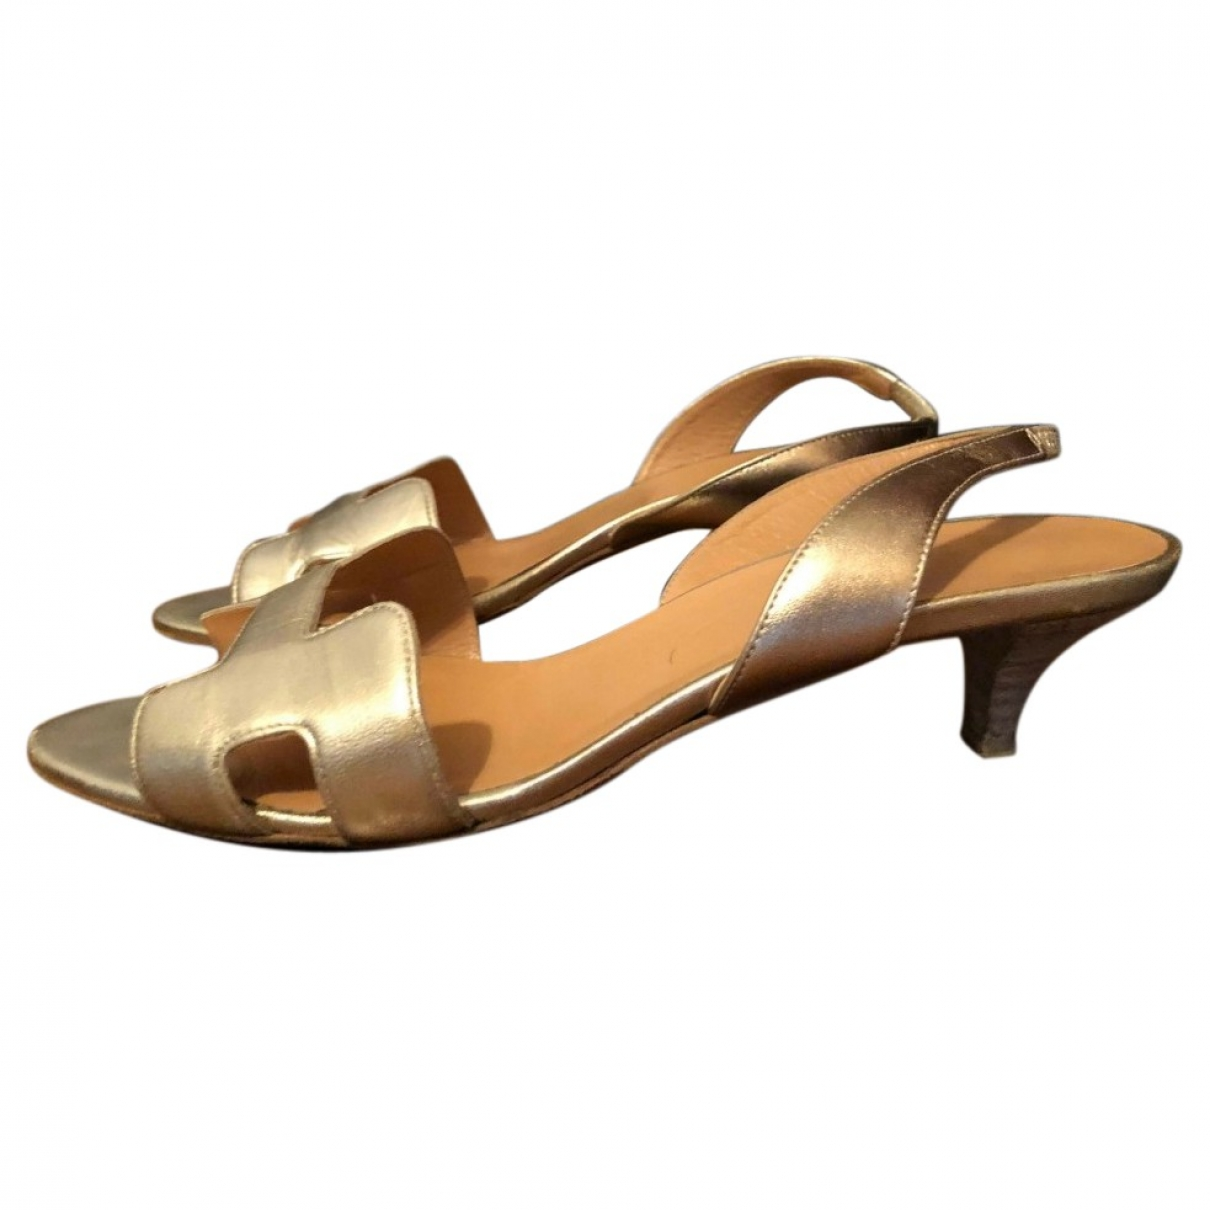 Hermès Night Gold Leather Sandals for Women 39.5 EU